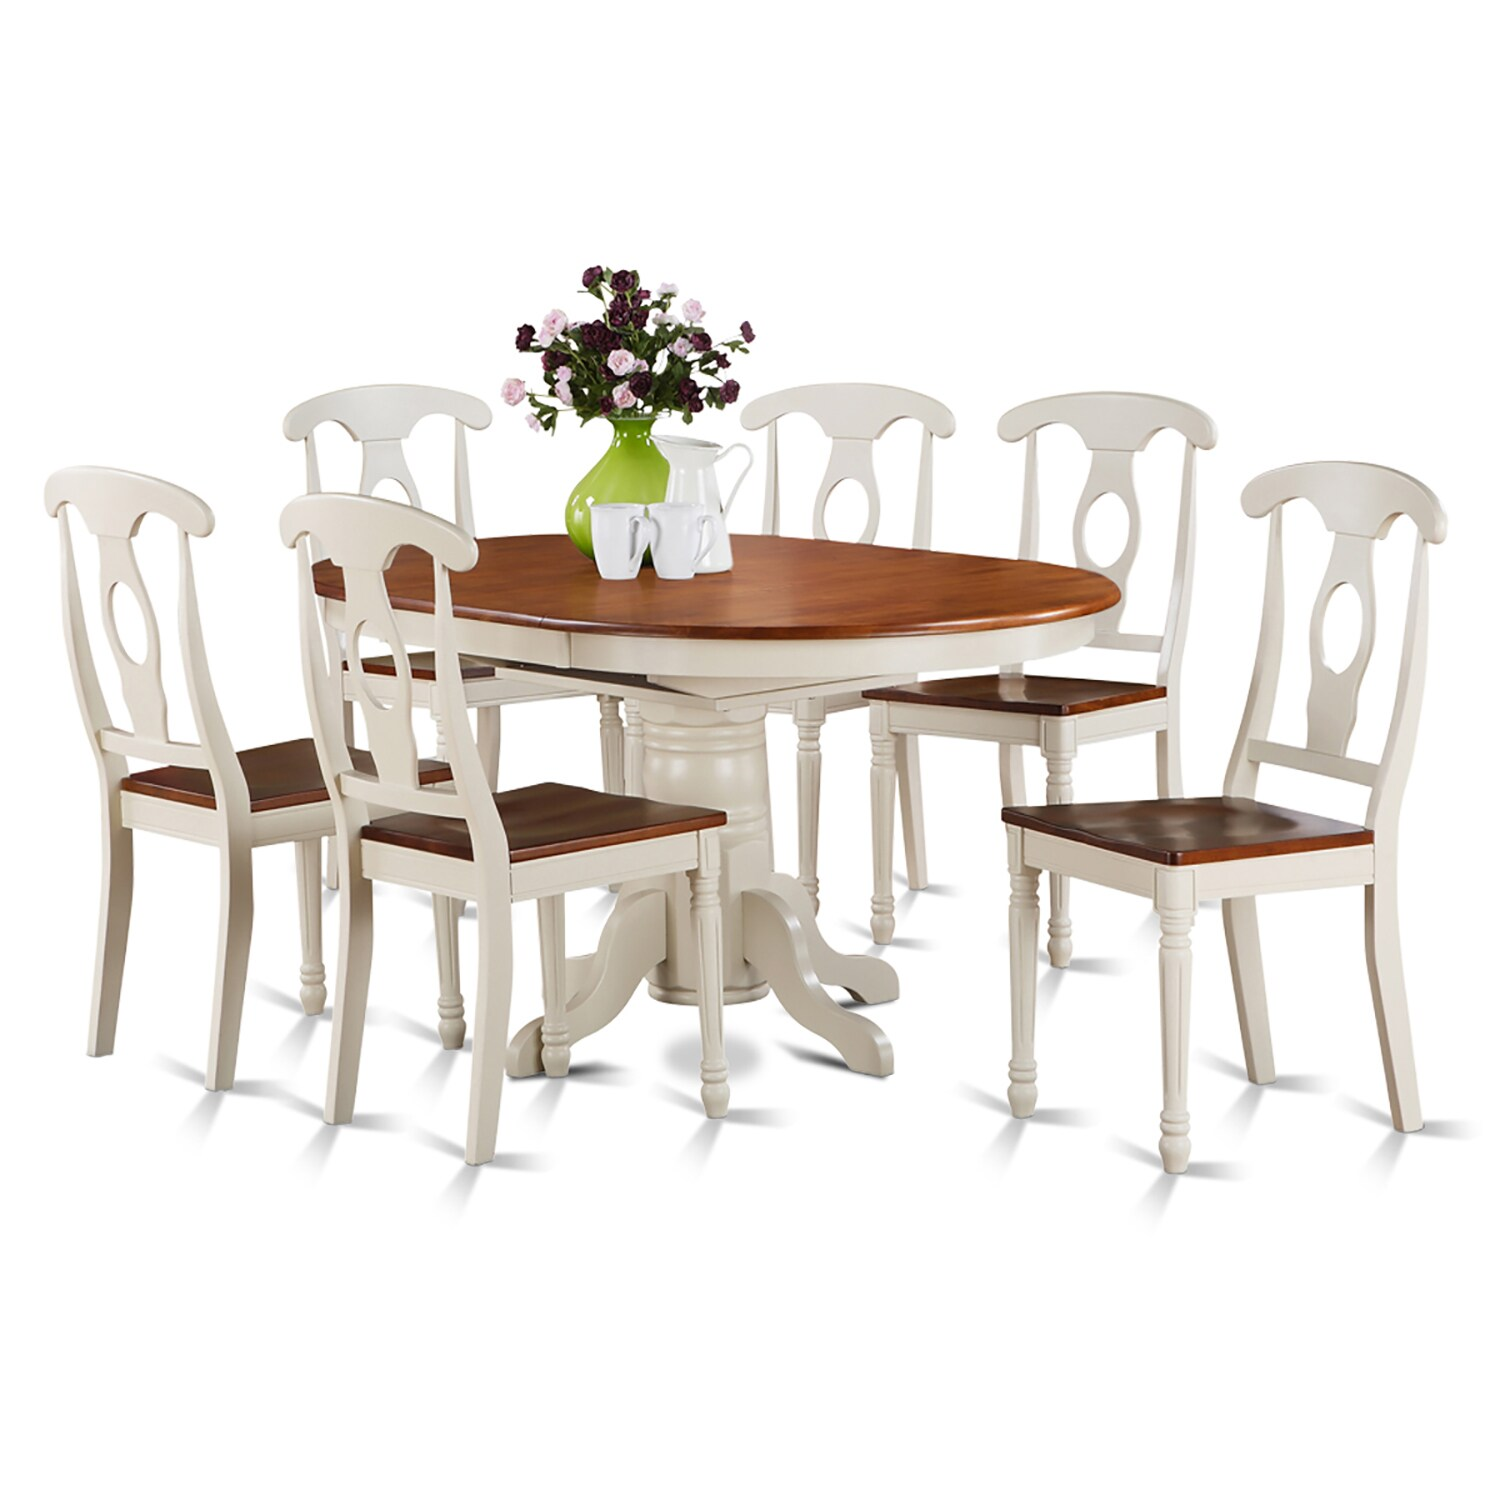 7-piece Oval Dining Table and 6 Dining Chairs (Buttermilk...